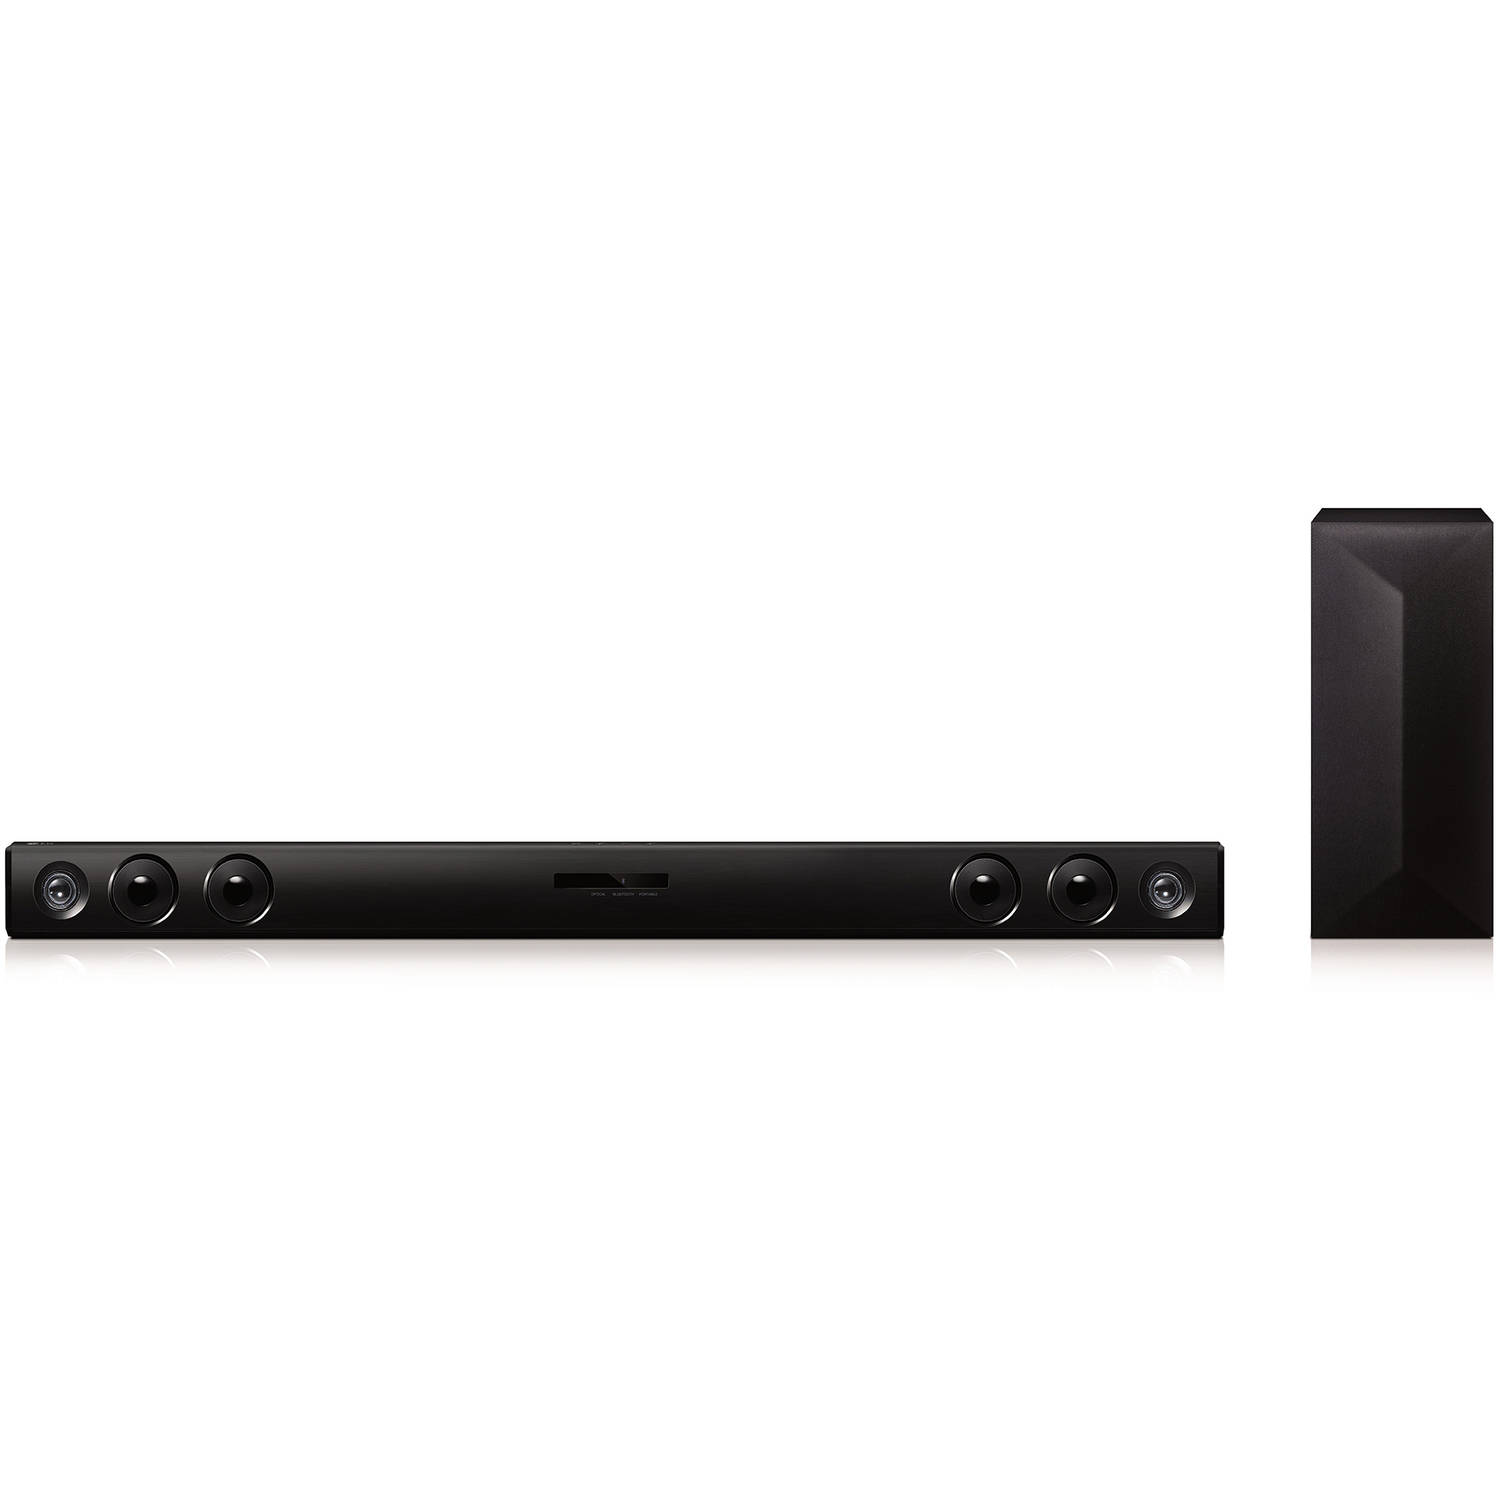 LG LAS465B 2.1-Channel 300-Watt Sound Bar with Wireless Subwoofer